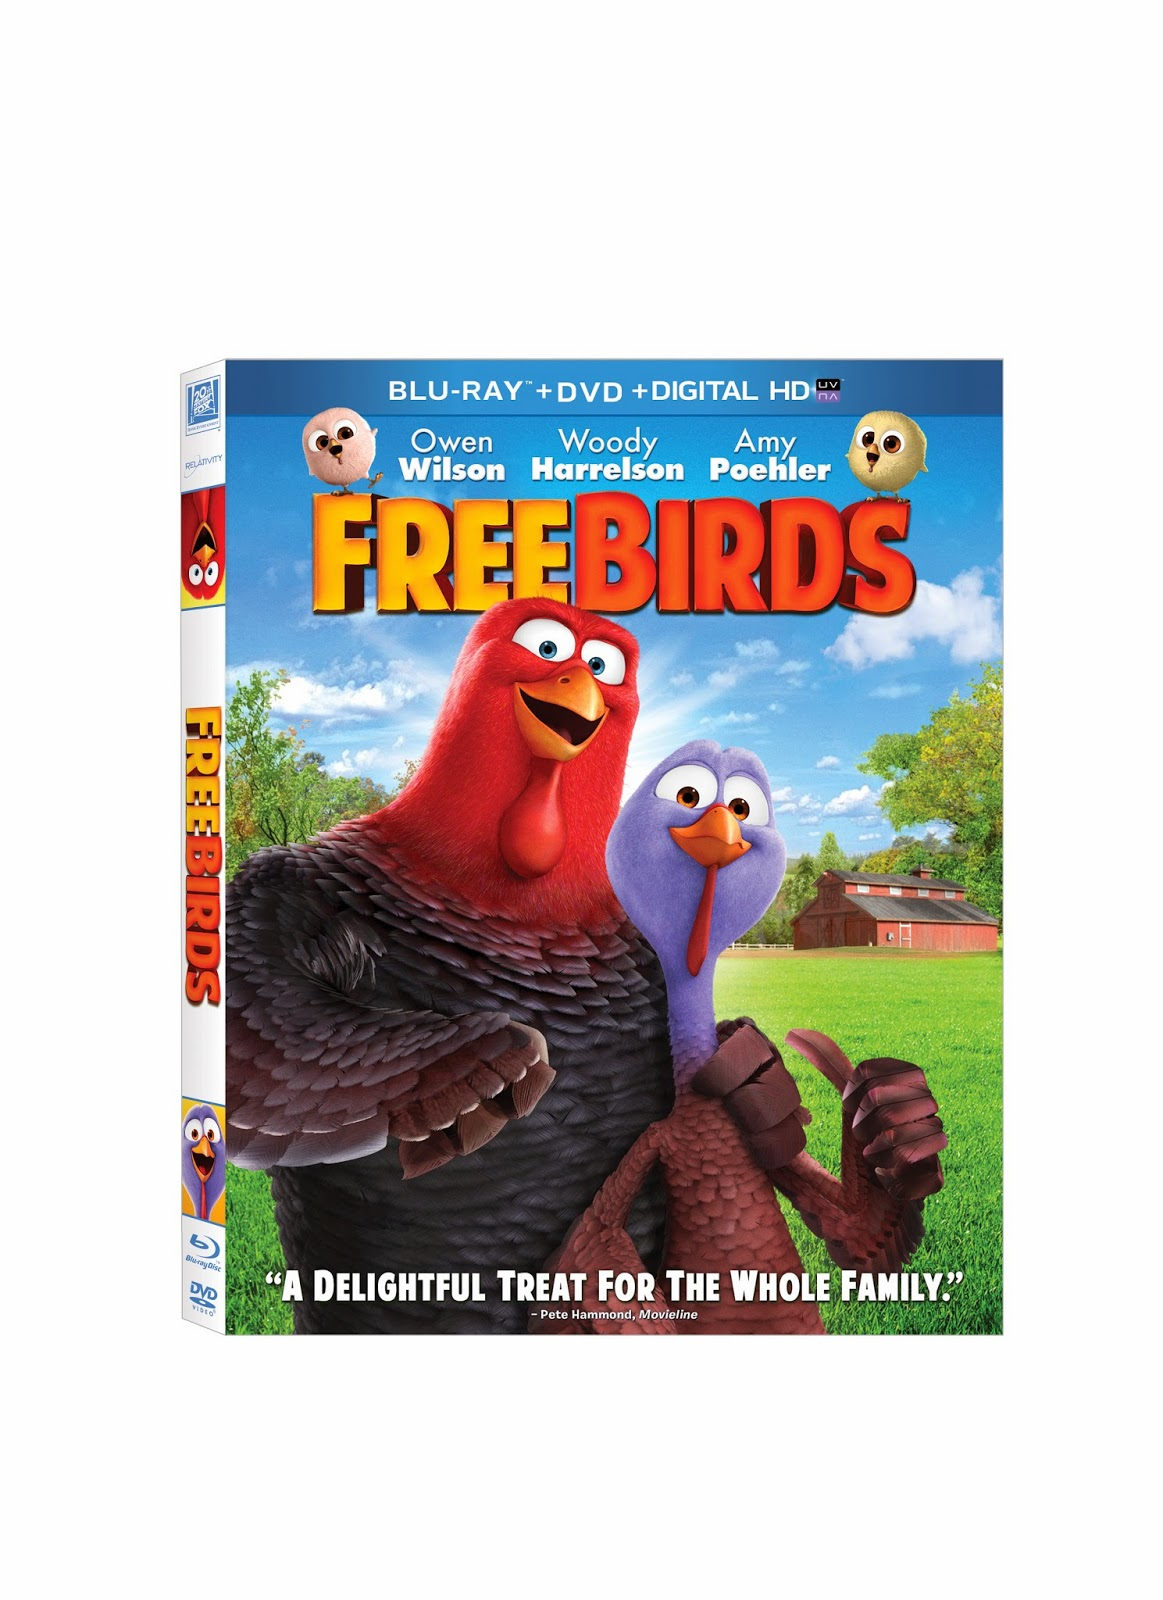 Free Birds Blu-Ray Combo Pack Giveaway